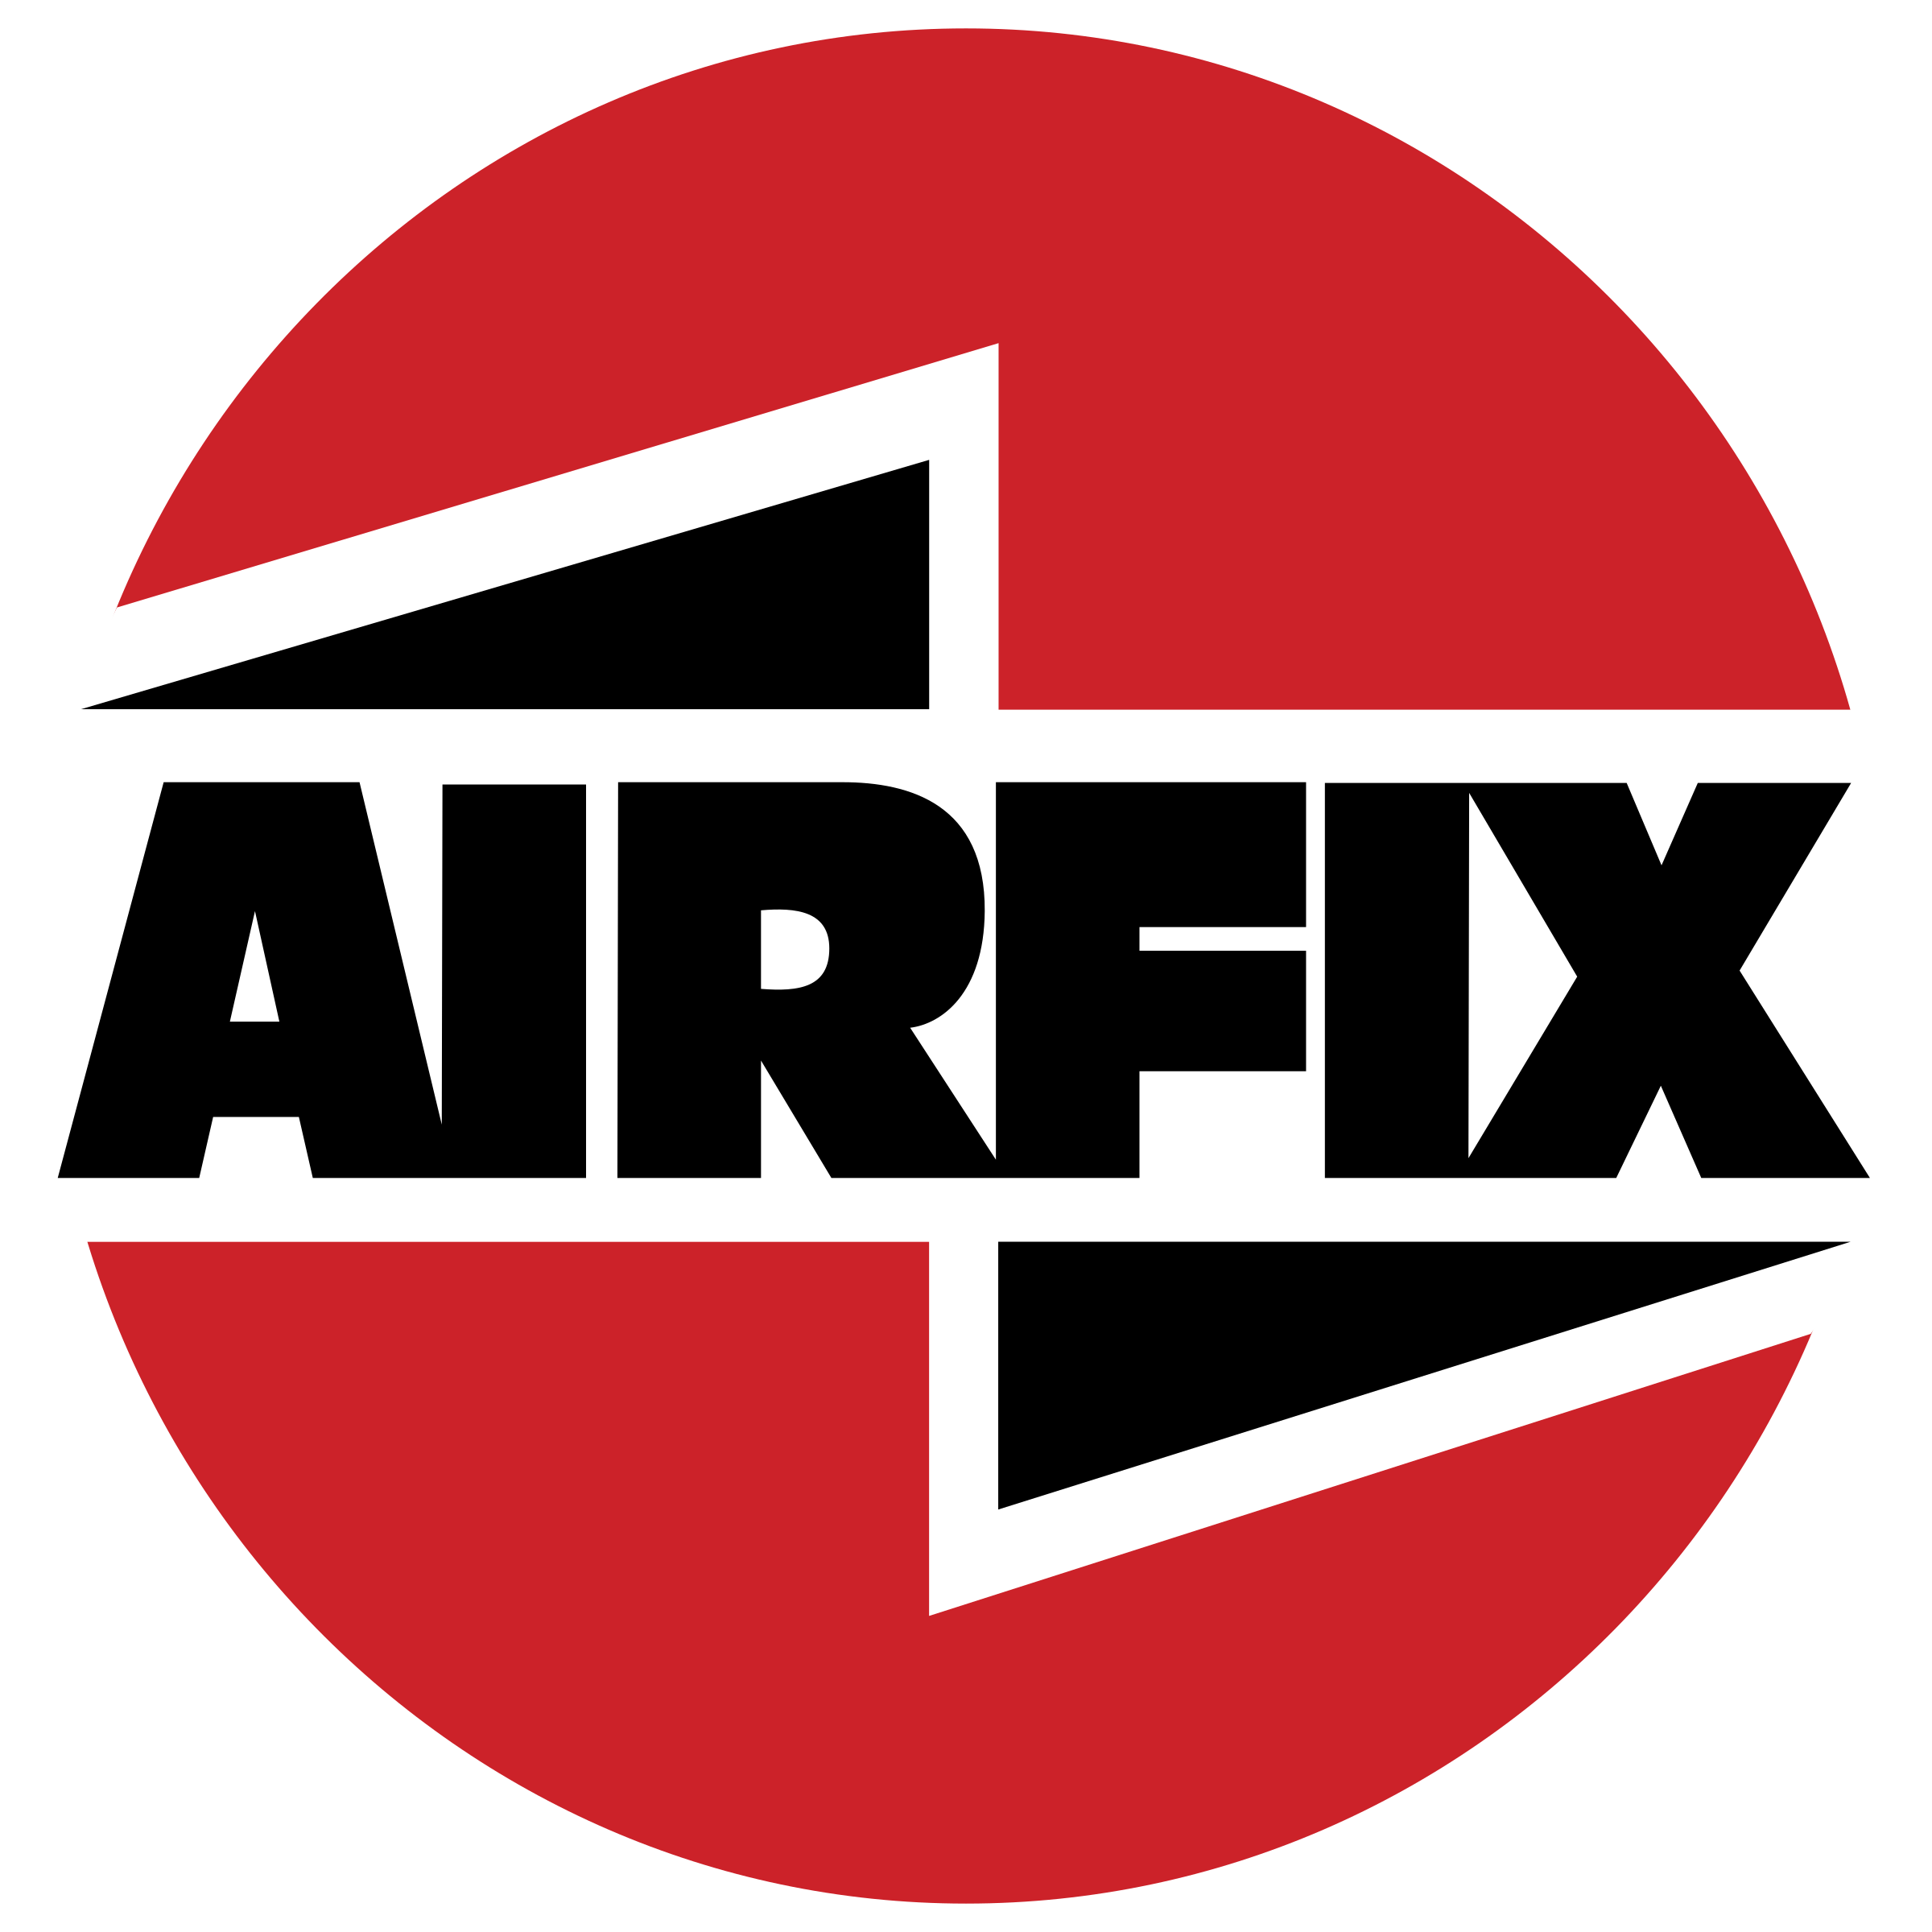 airfix.png